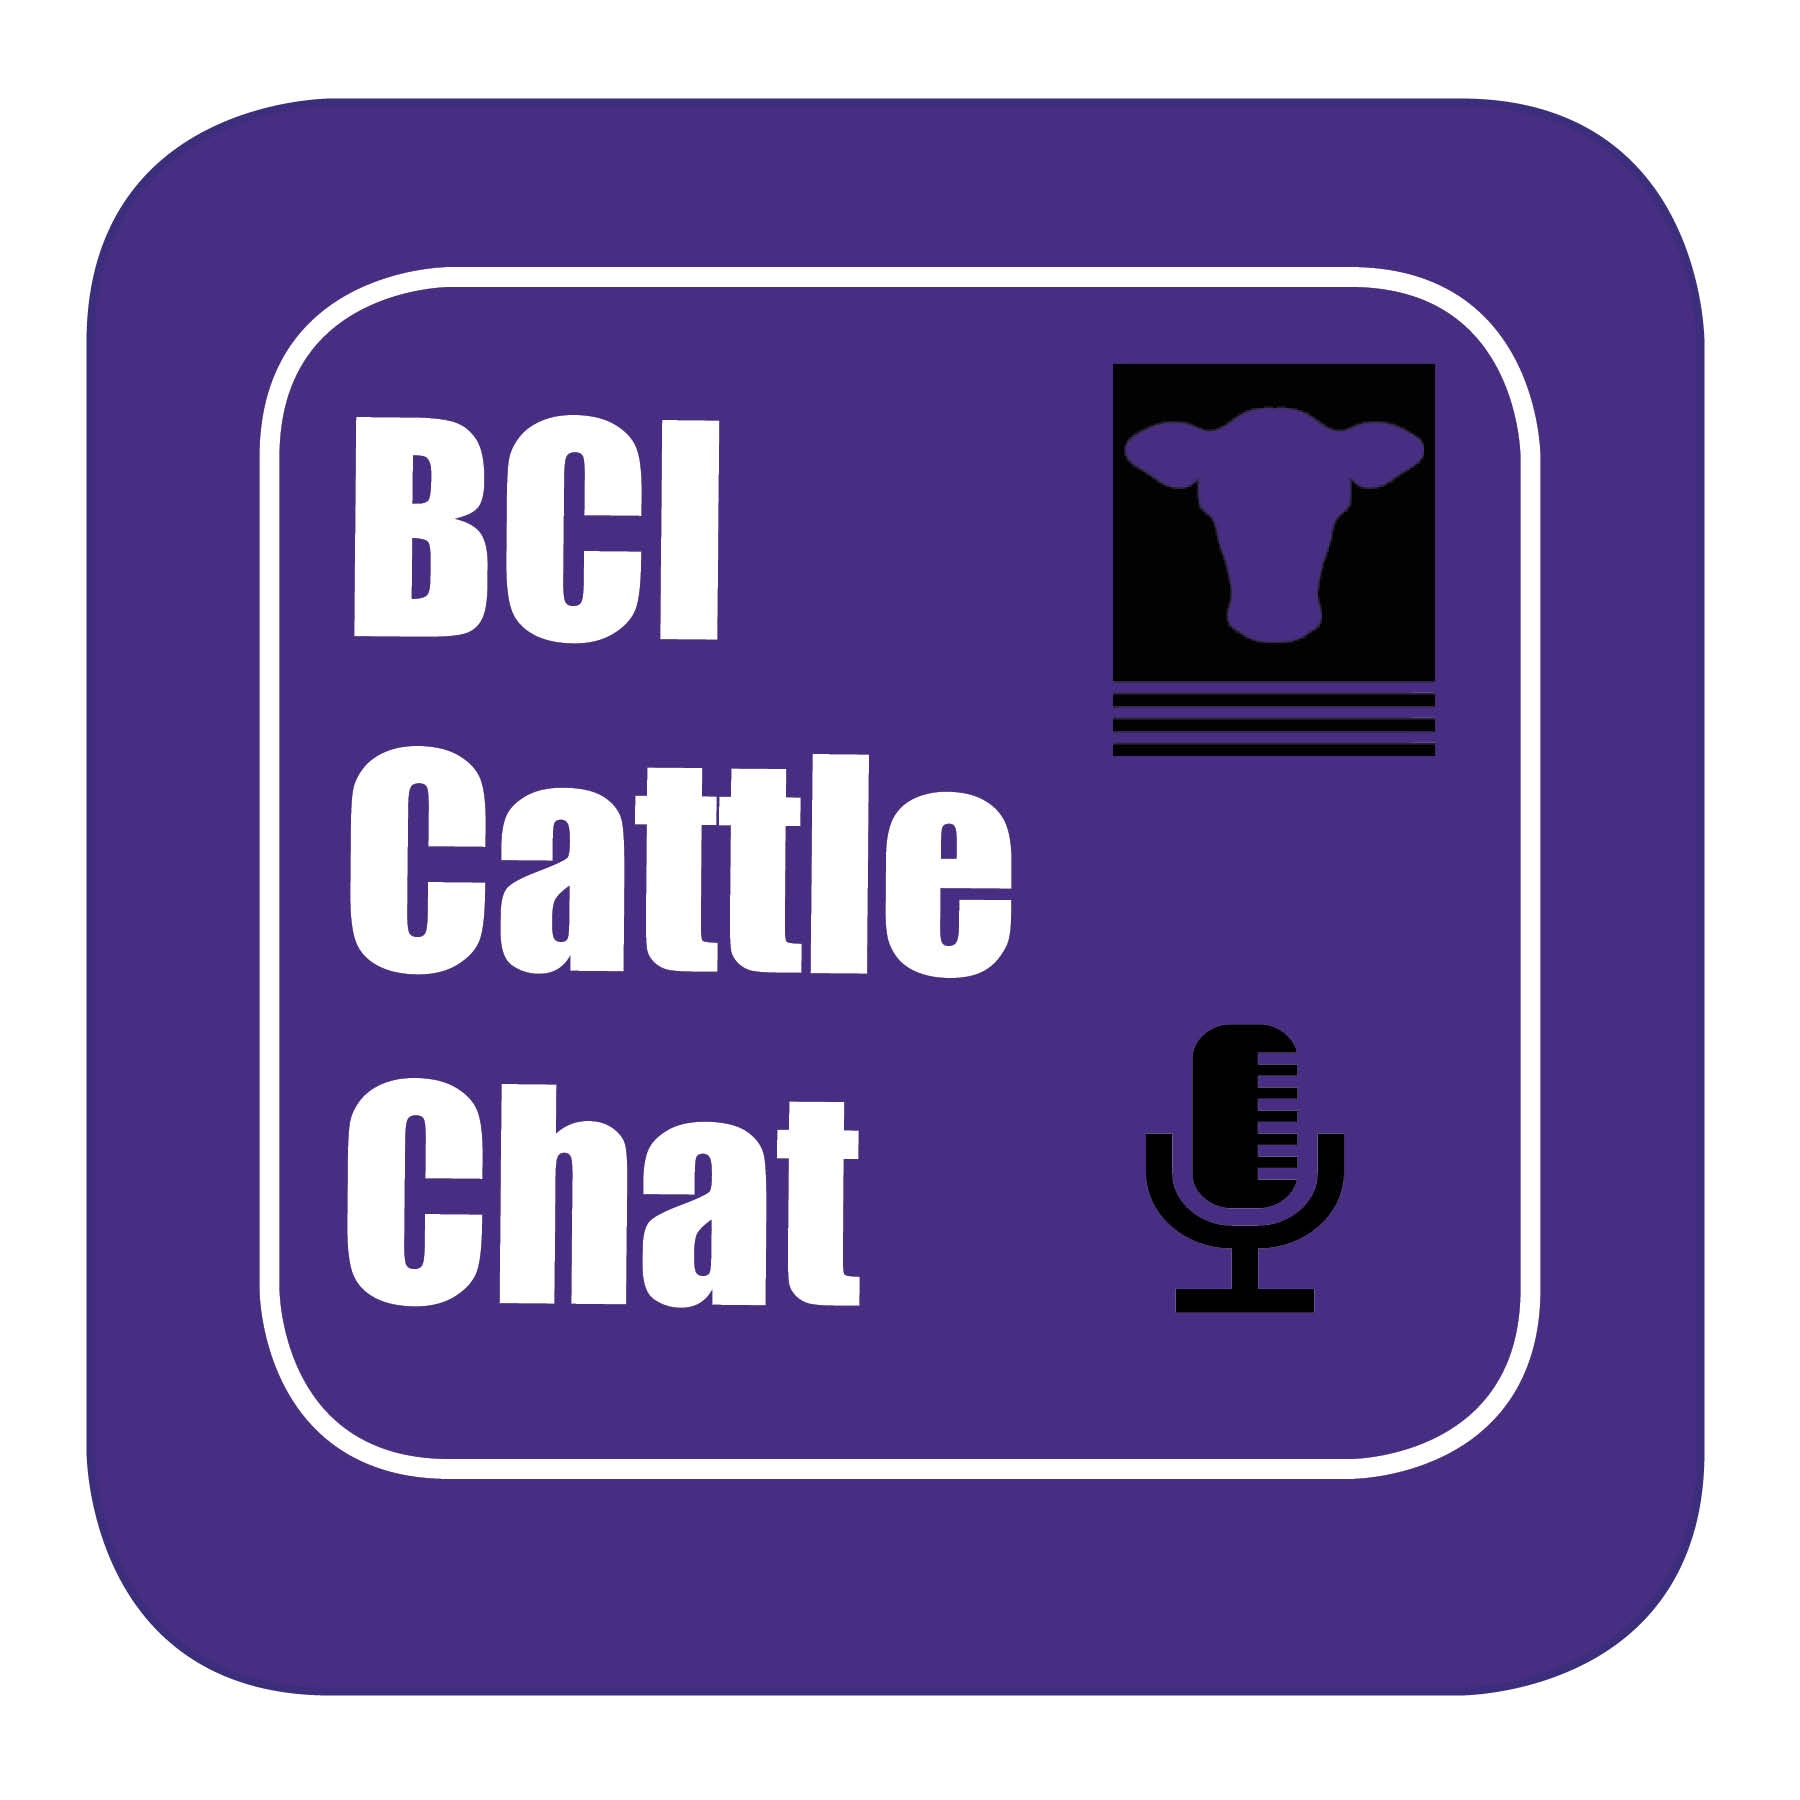 BCI Cattle Chat - Episode 22